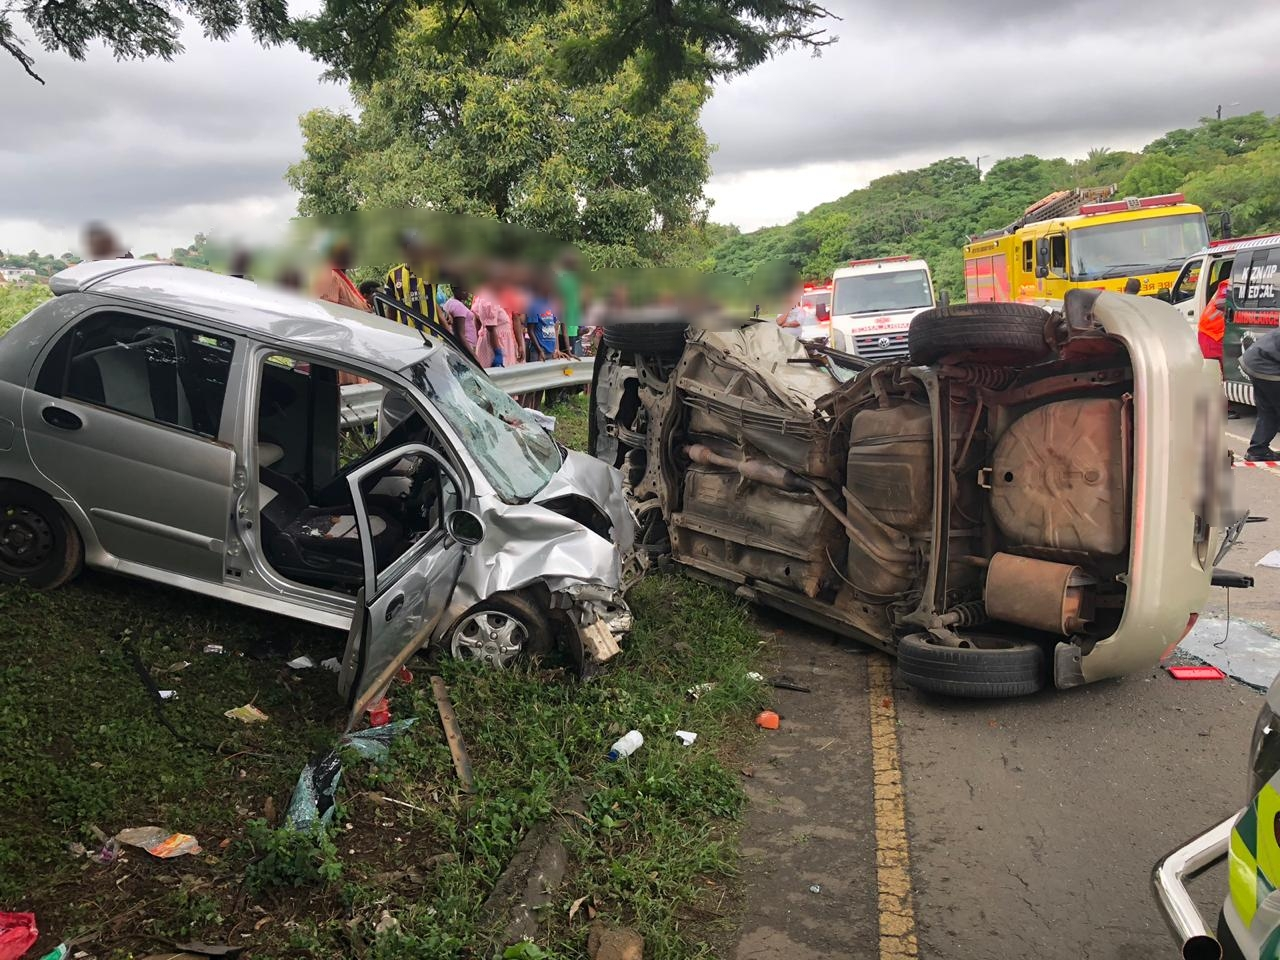 KZN: Seven injured in Verulam crash - Arrive Alive